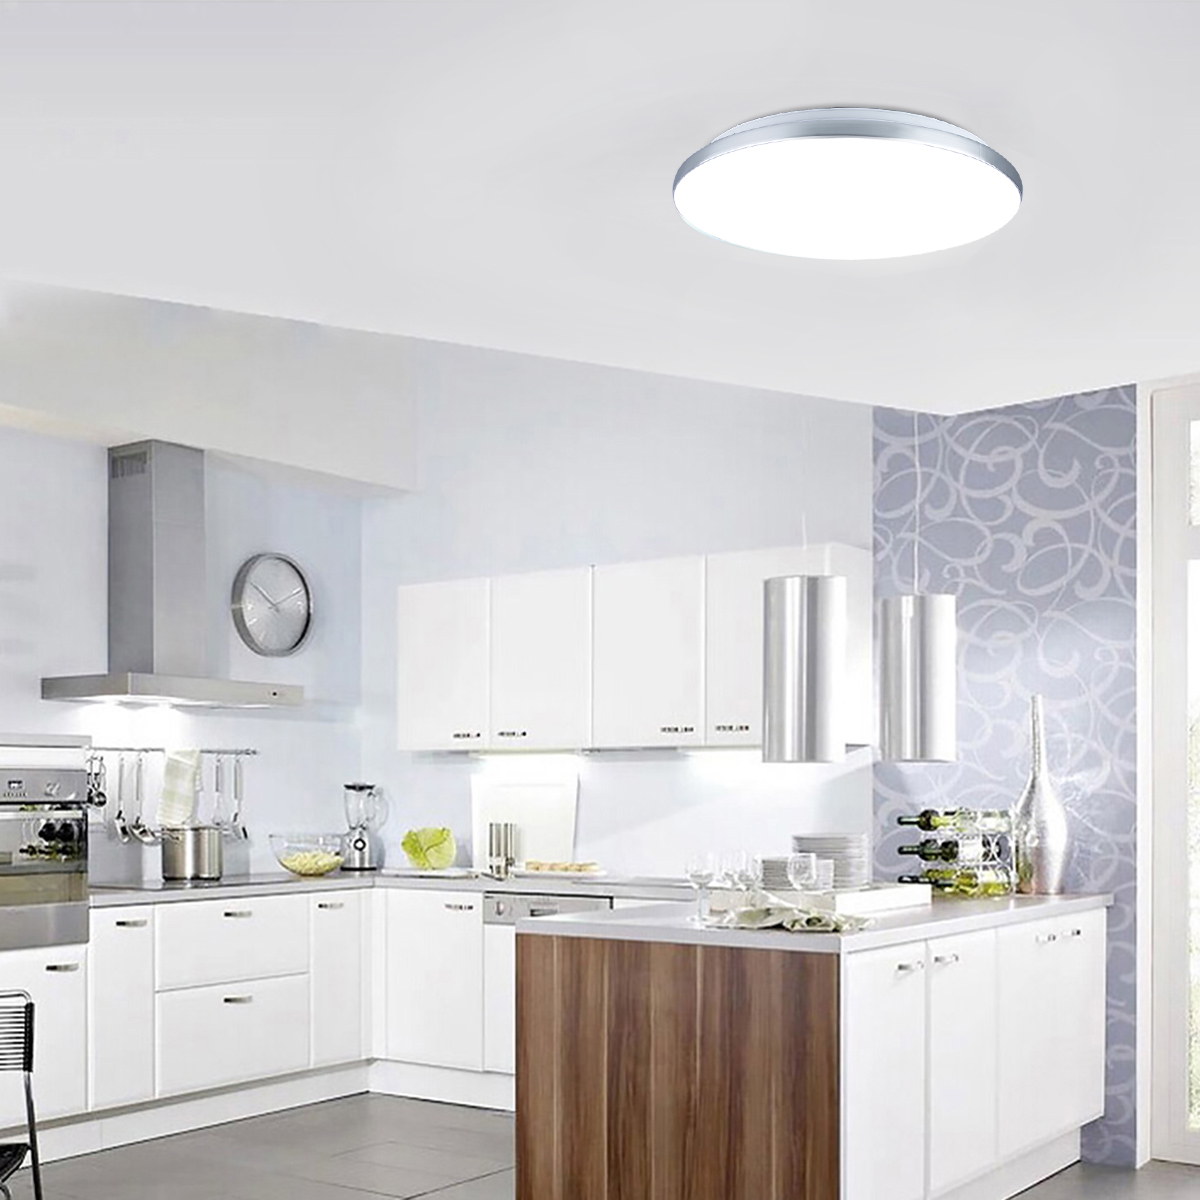 24W Round LED Ceiling Down Light Flush Mount Home Kitchen